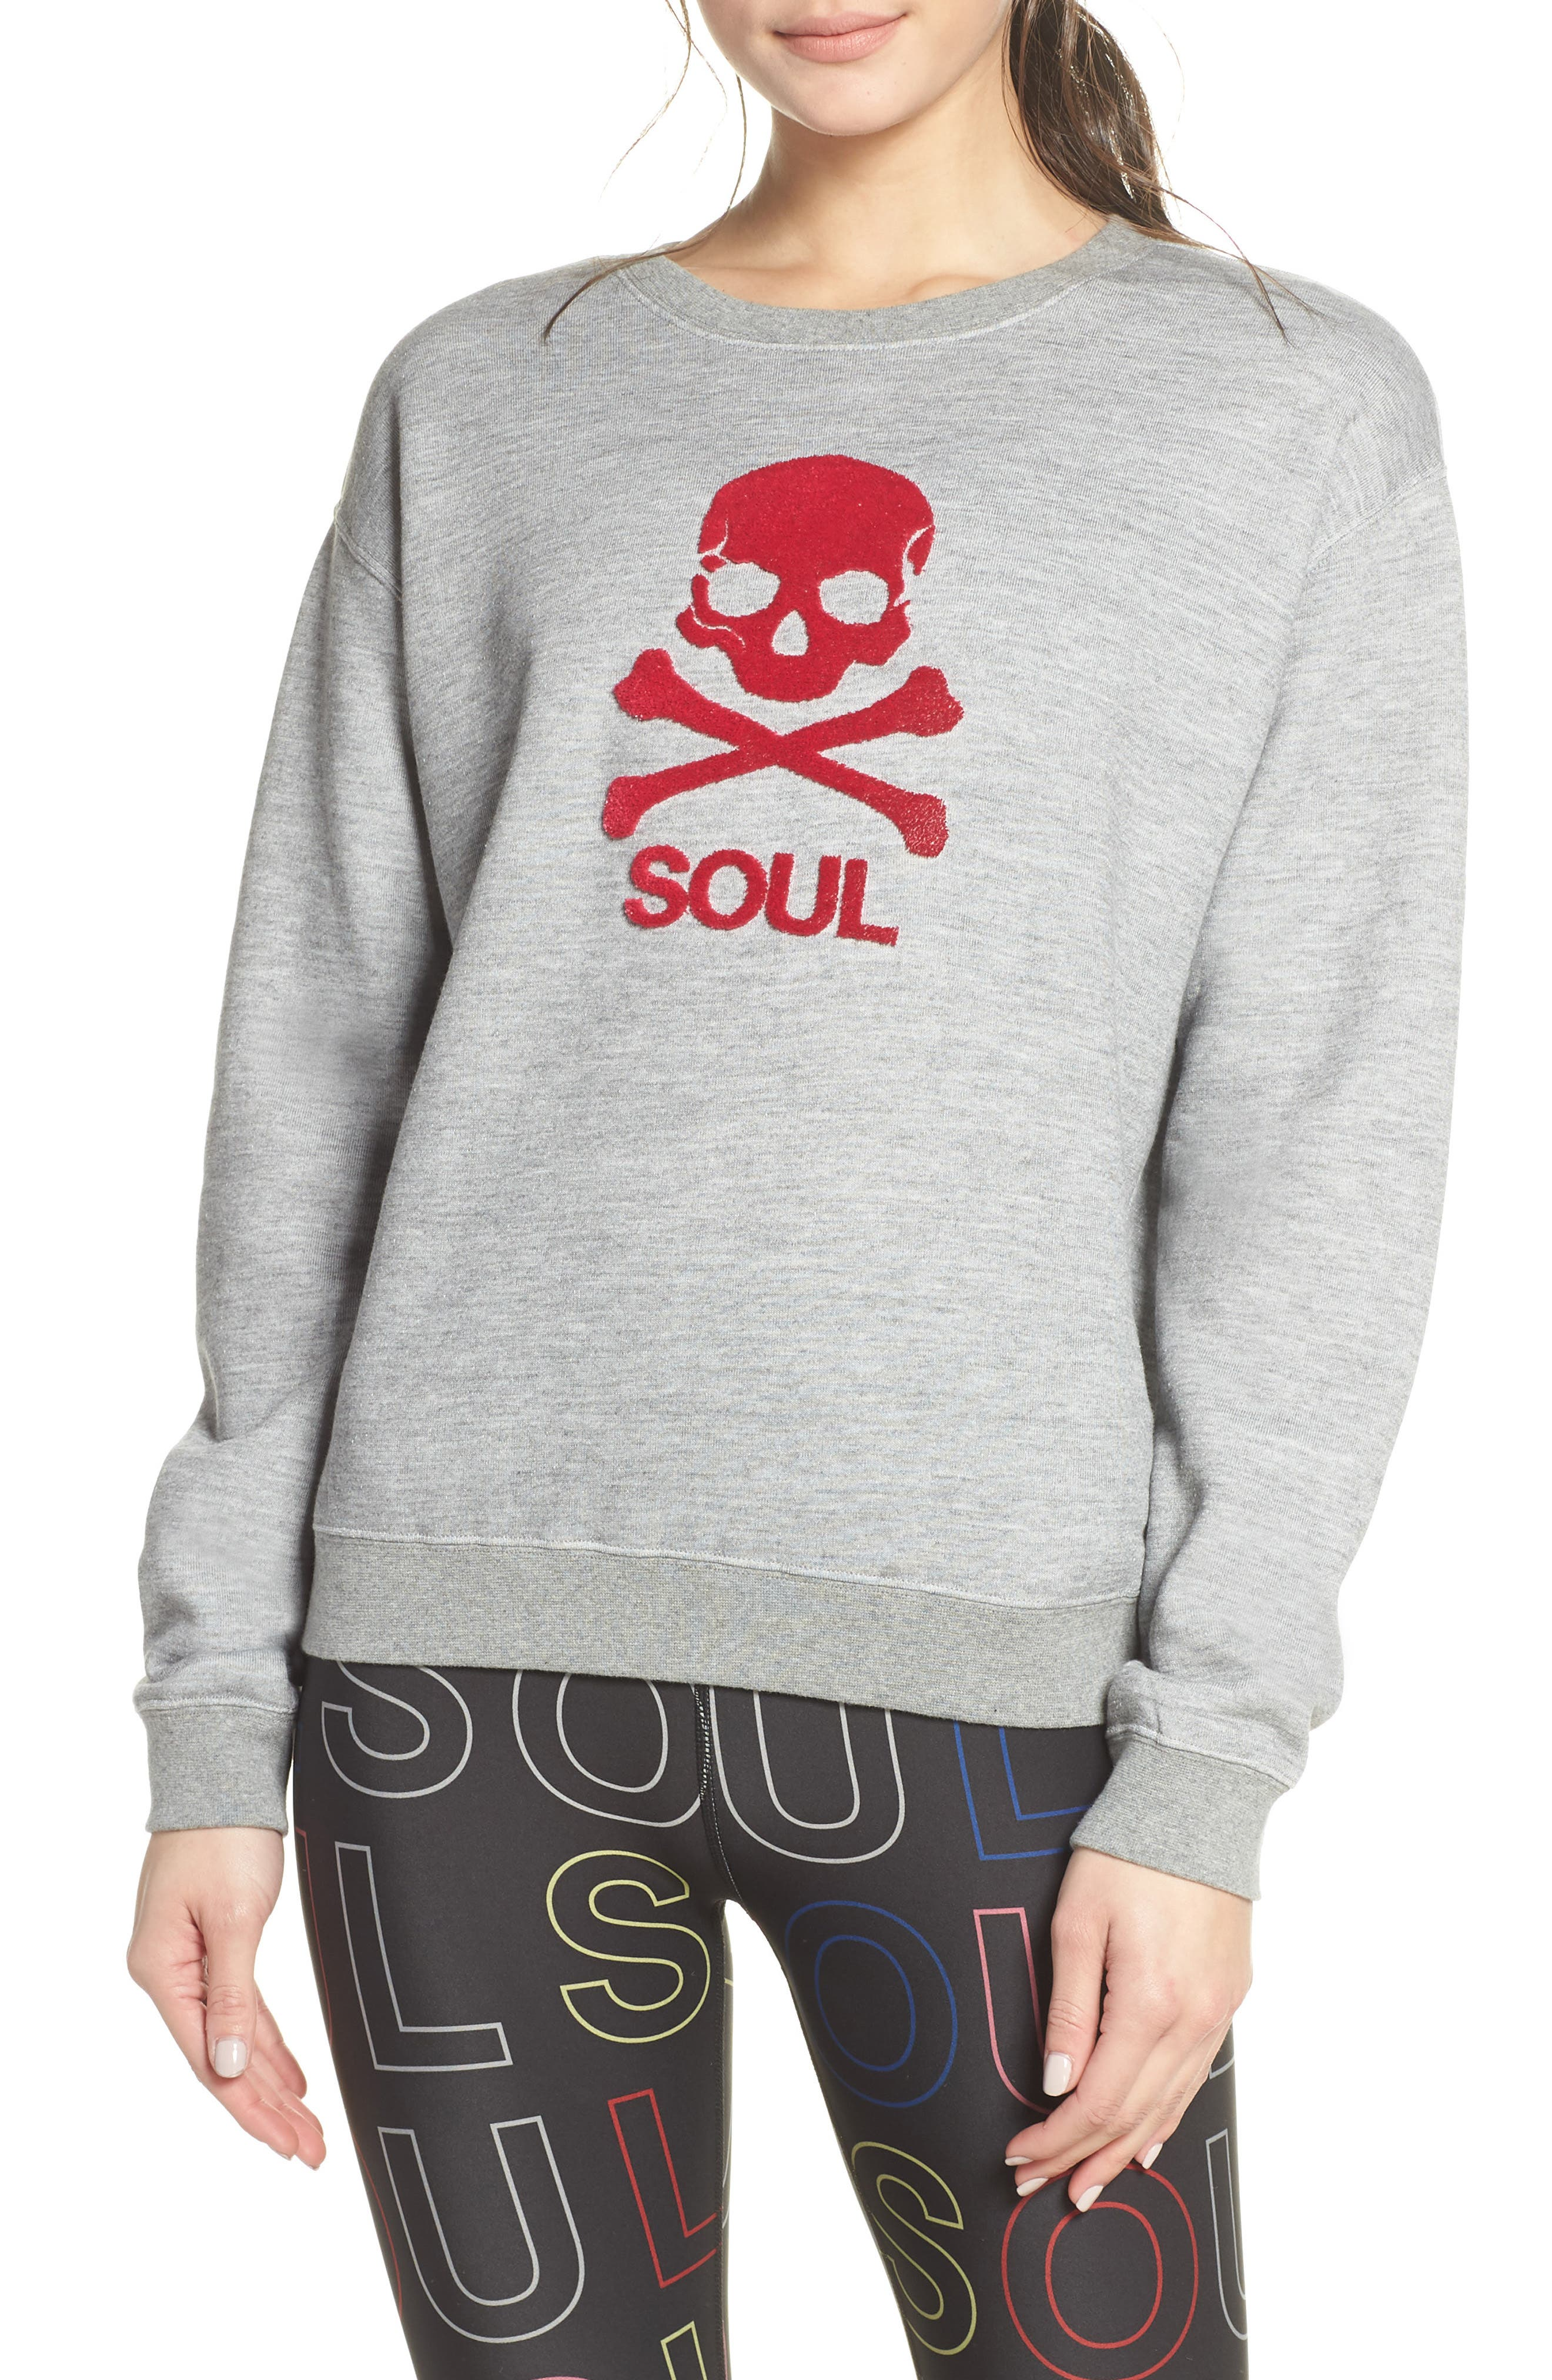 Soul By Soulcycle Skull Graphic Sweatshirt, Grey